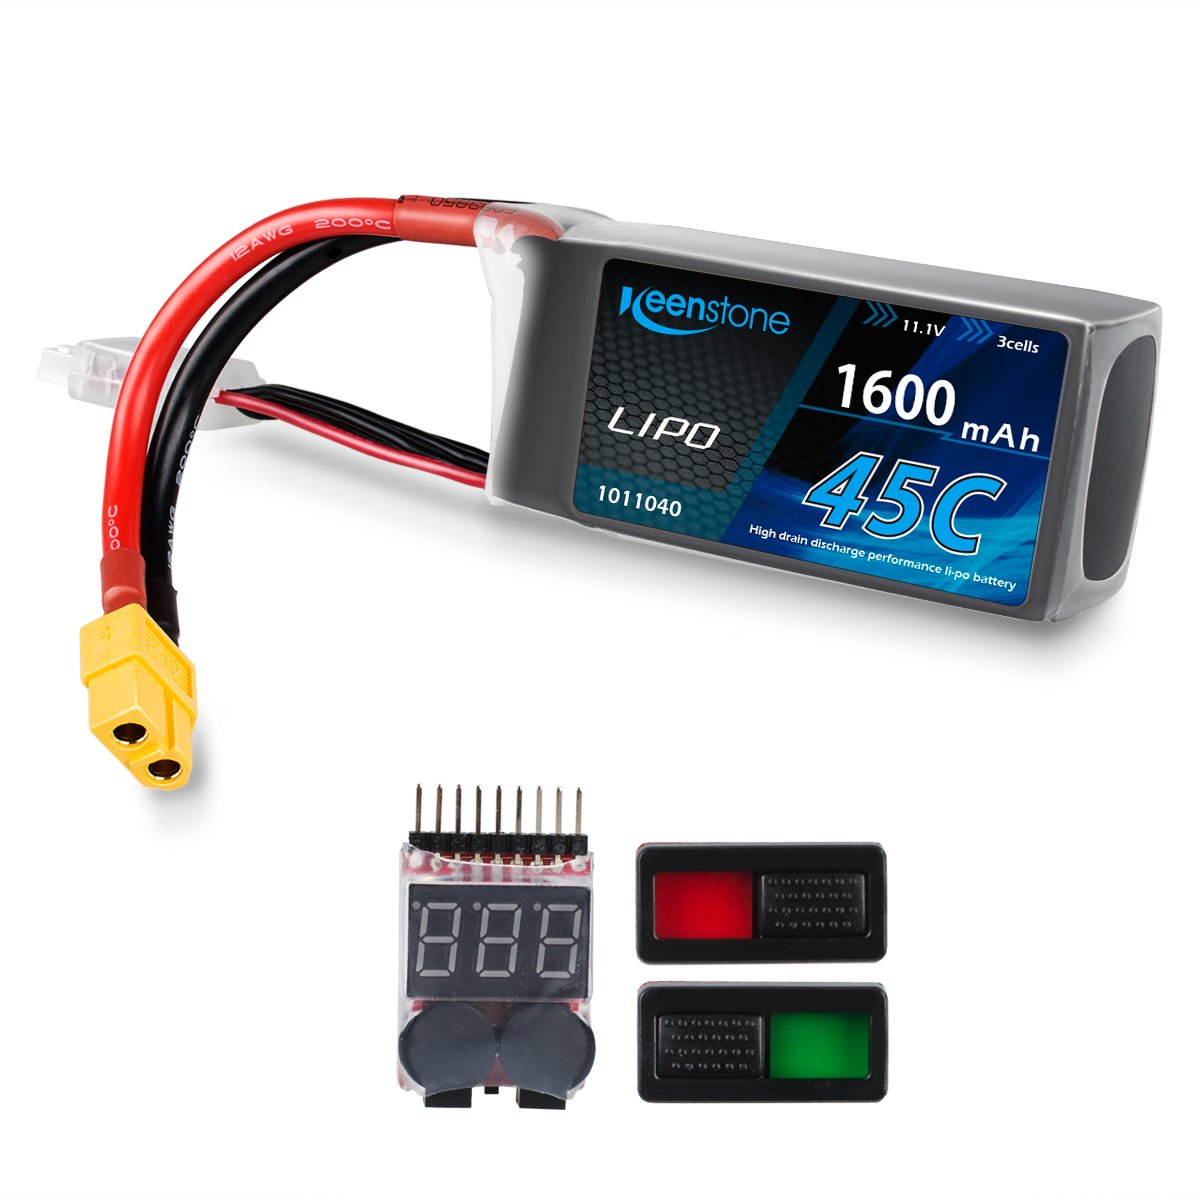 Keenstone 3S LiPo Battery 45C 1600mAh 11.1V w/ XT60 Plug Voltage Meter & Battery Power Indicator for RC Boat Heli Airplane UAV Drone FPV